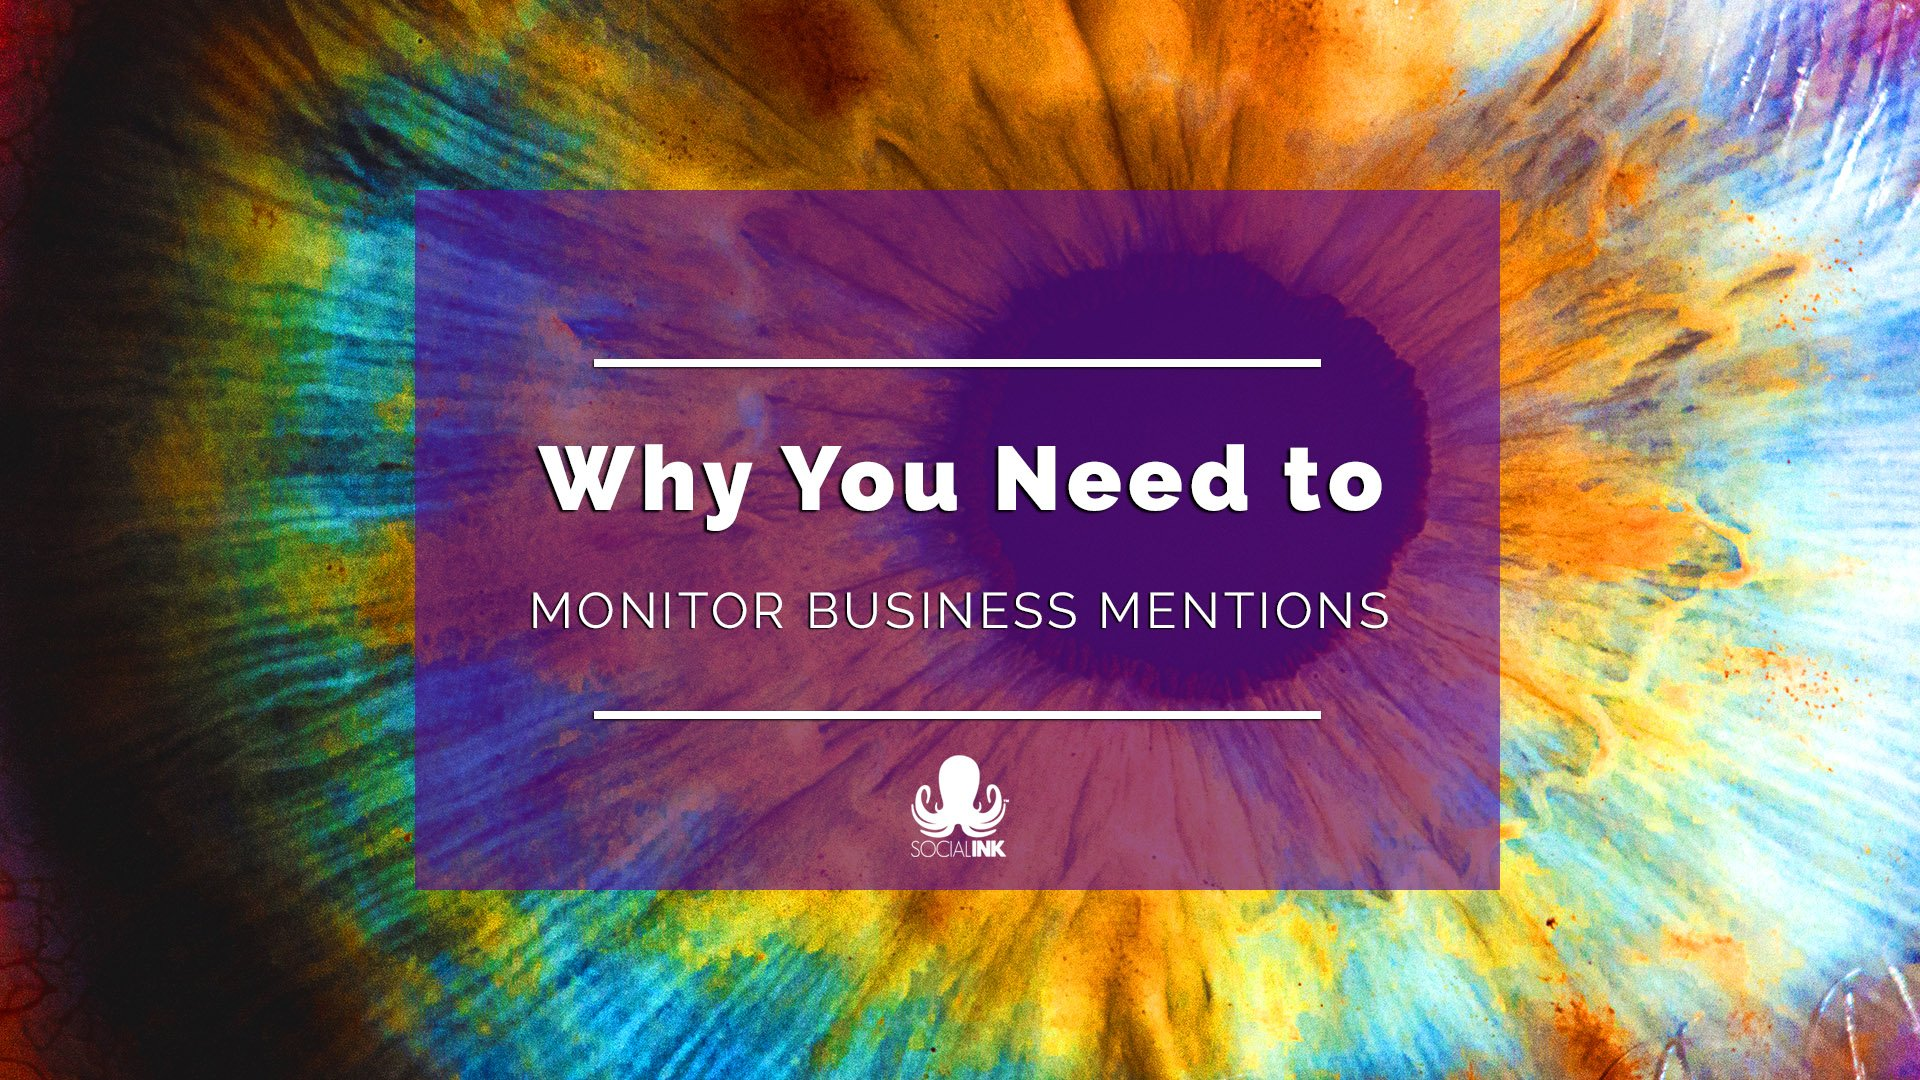 Why You Need to Monitor Business Mentions